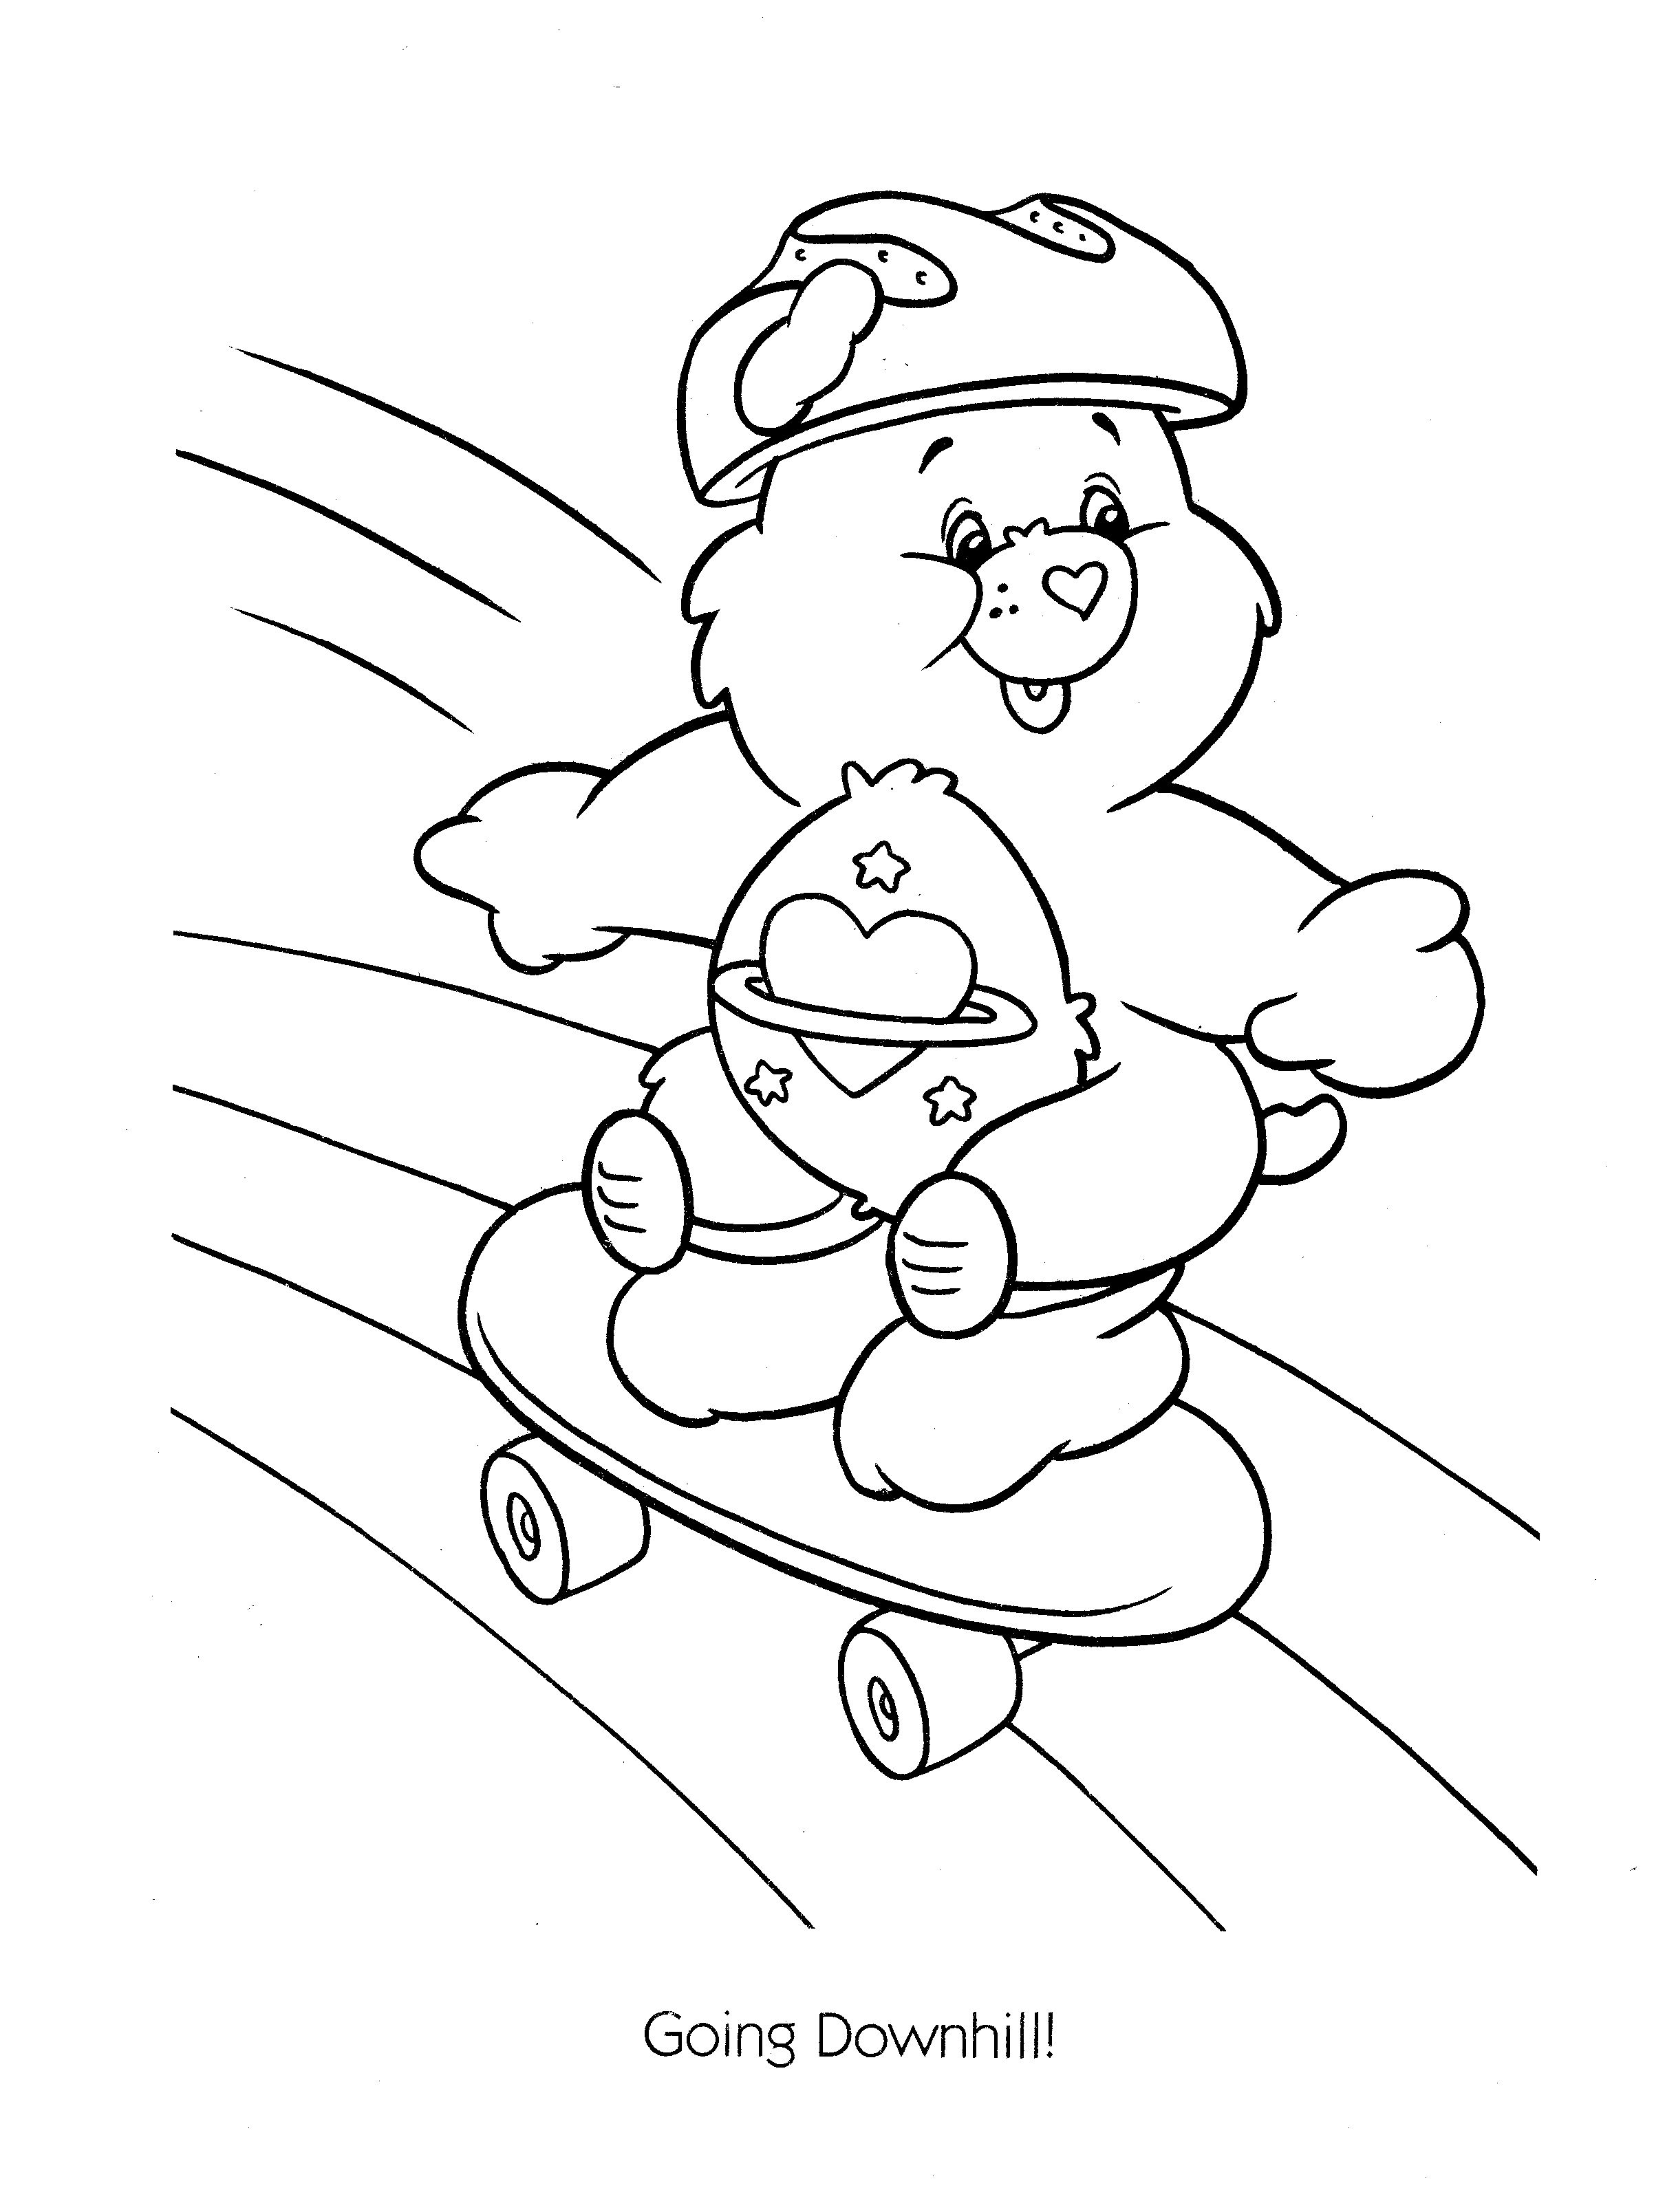 sad care bear coloring pages | Care Bear Coloring Pages On Cousins Penguin Sketch ...